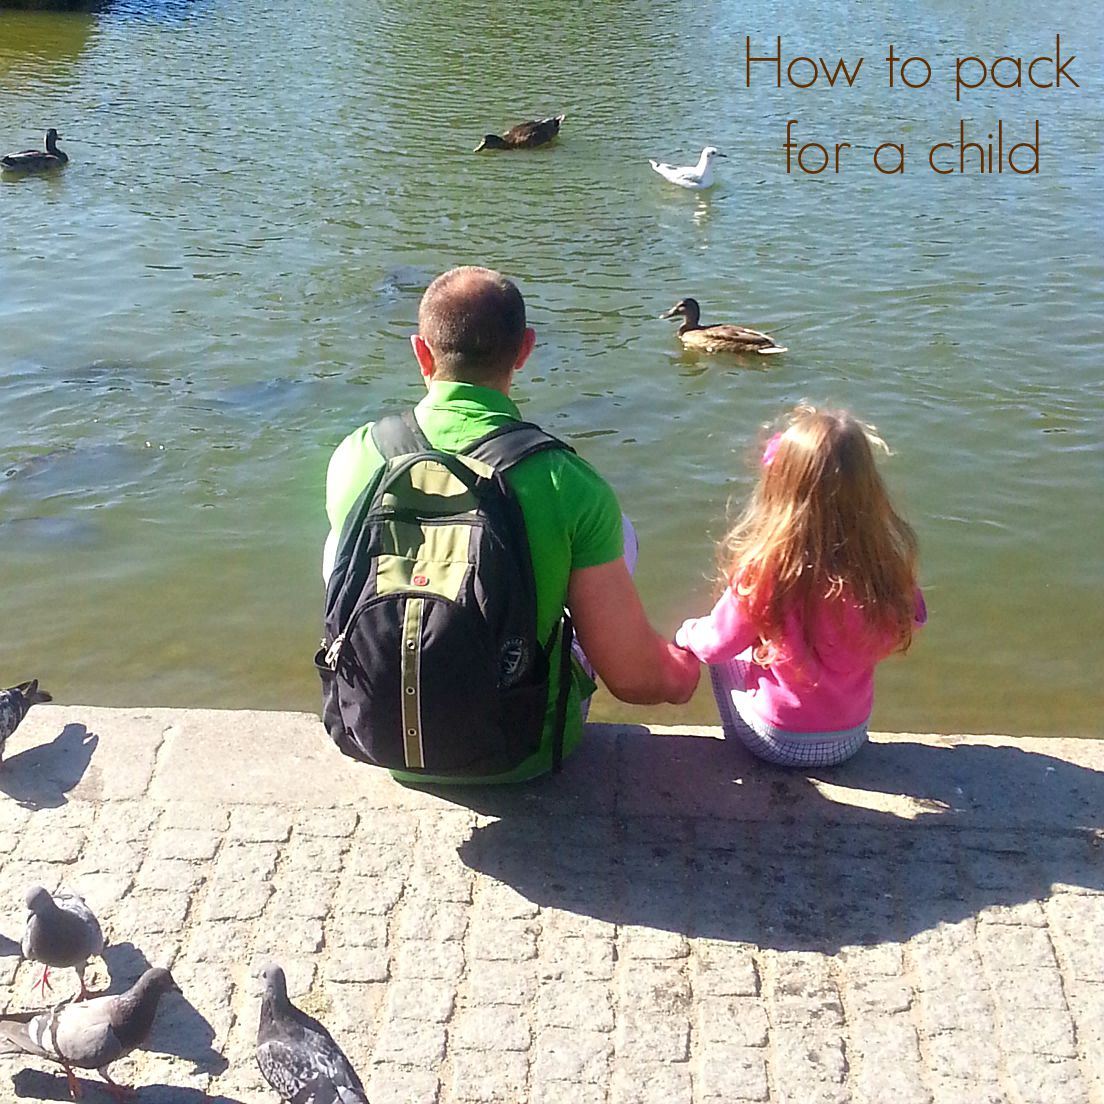 How to pack for a child